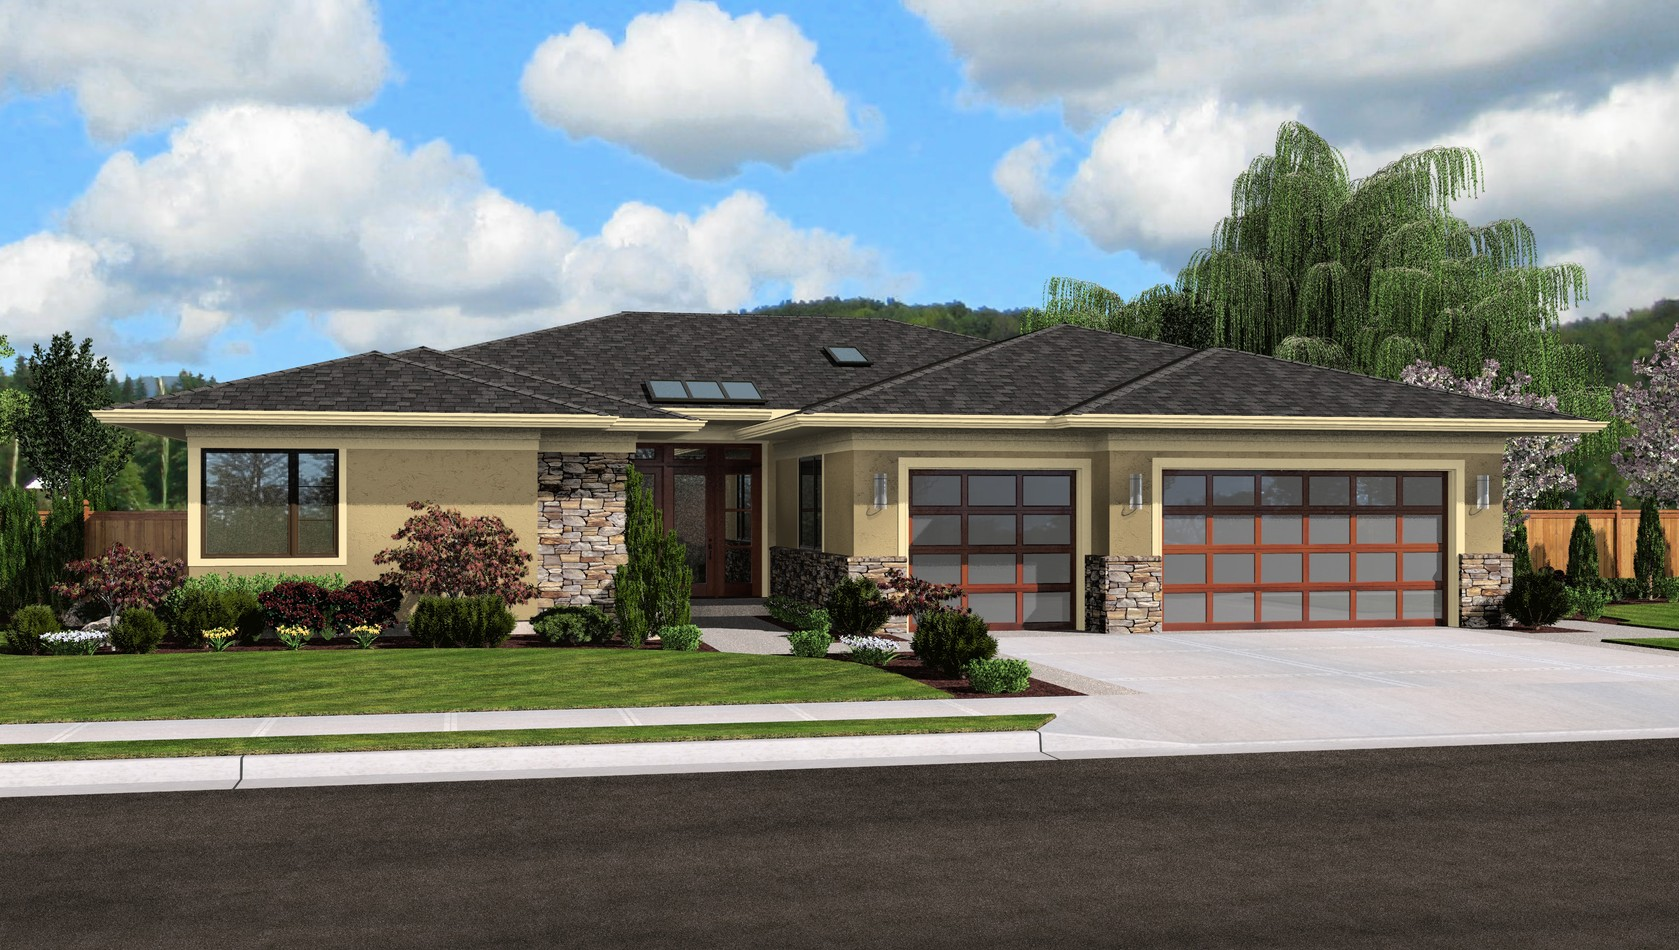 Contemporary house plan 1245 the riverside 2334 sqft 4 for Contemporary ranch house plans